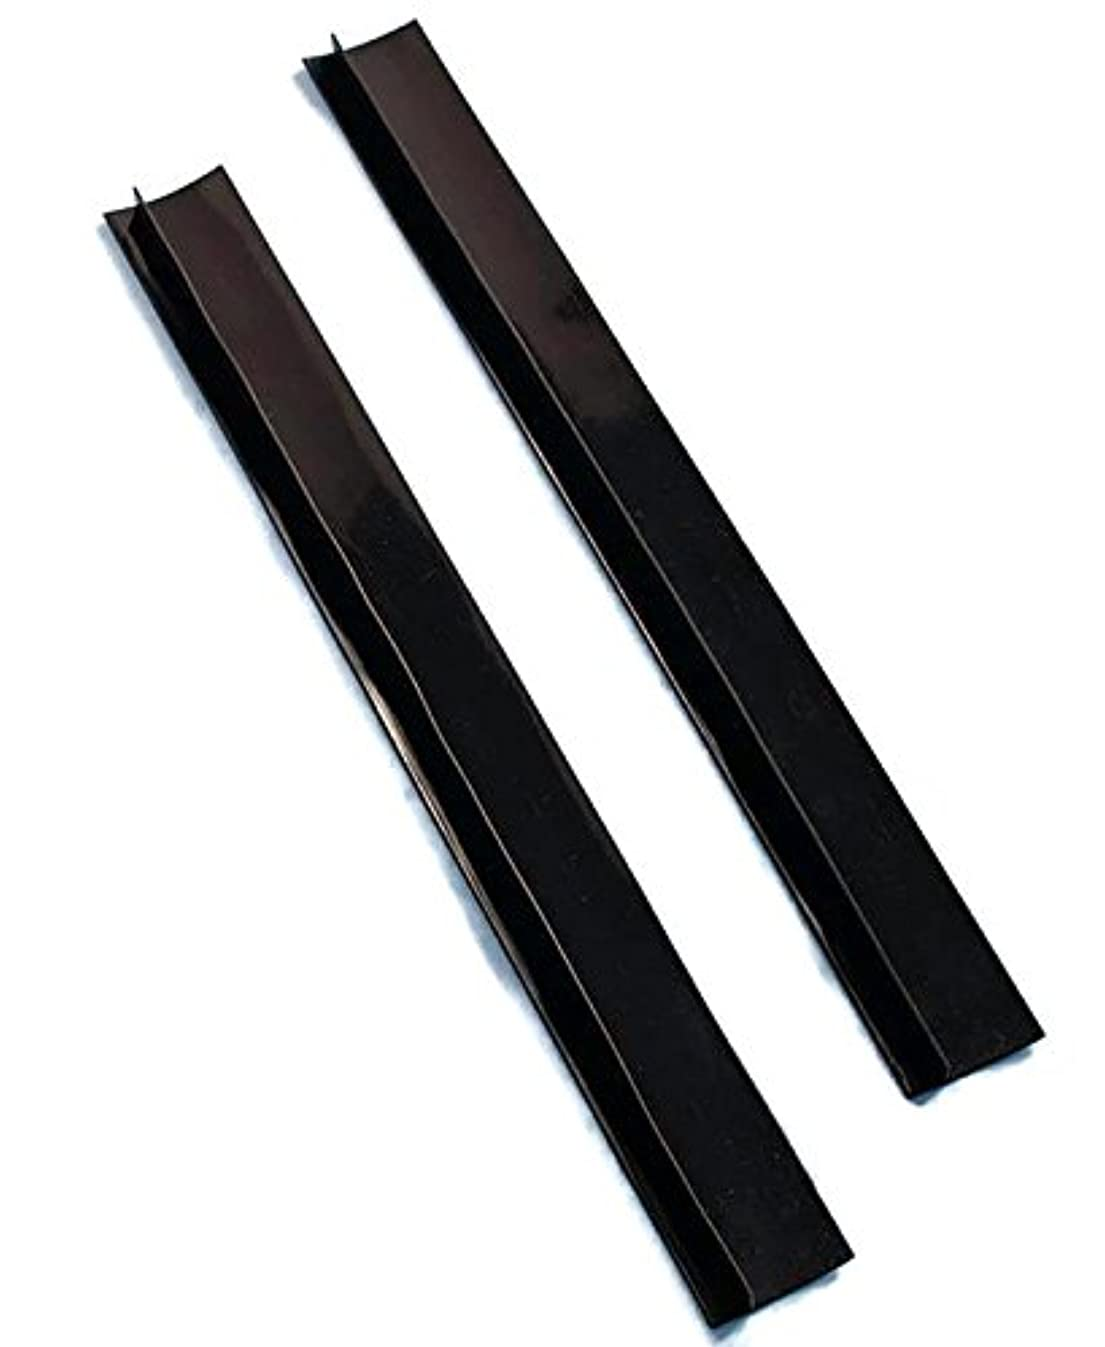 日曜日スカート更新するSet of 2 Black Silicone Counter Gap Covers by LTD Commodities